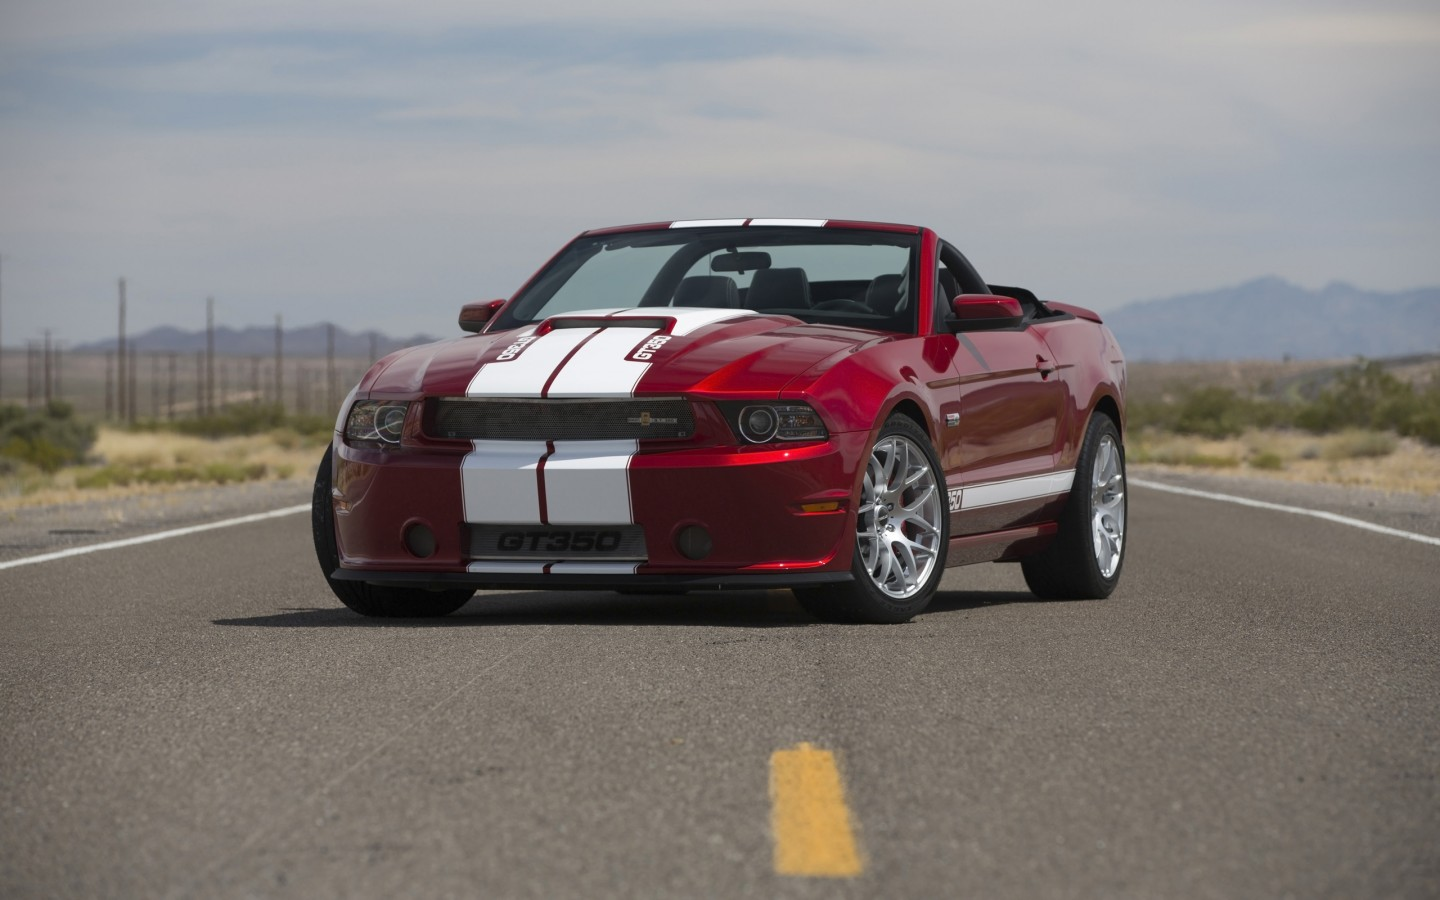 2013 Ford Mustang Shelby GT350 Wallpaper | HD Car ...